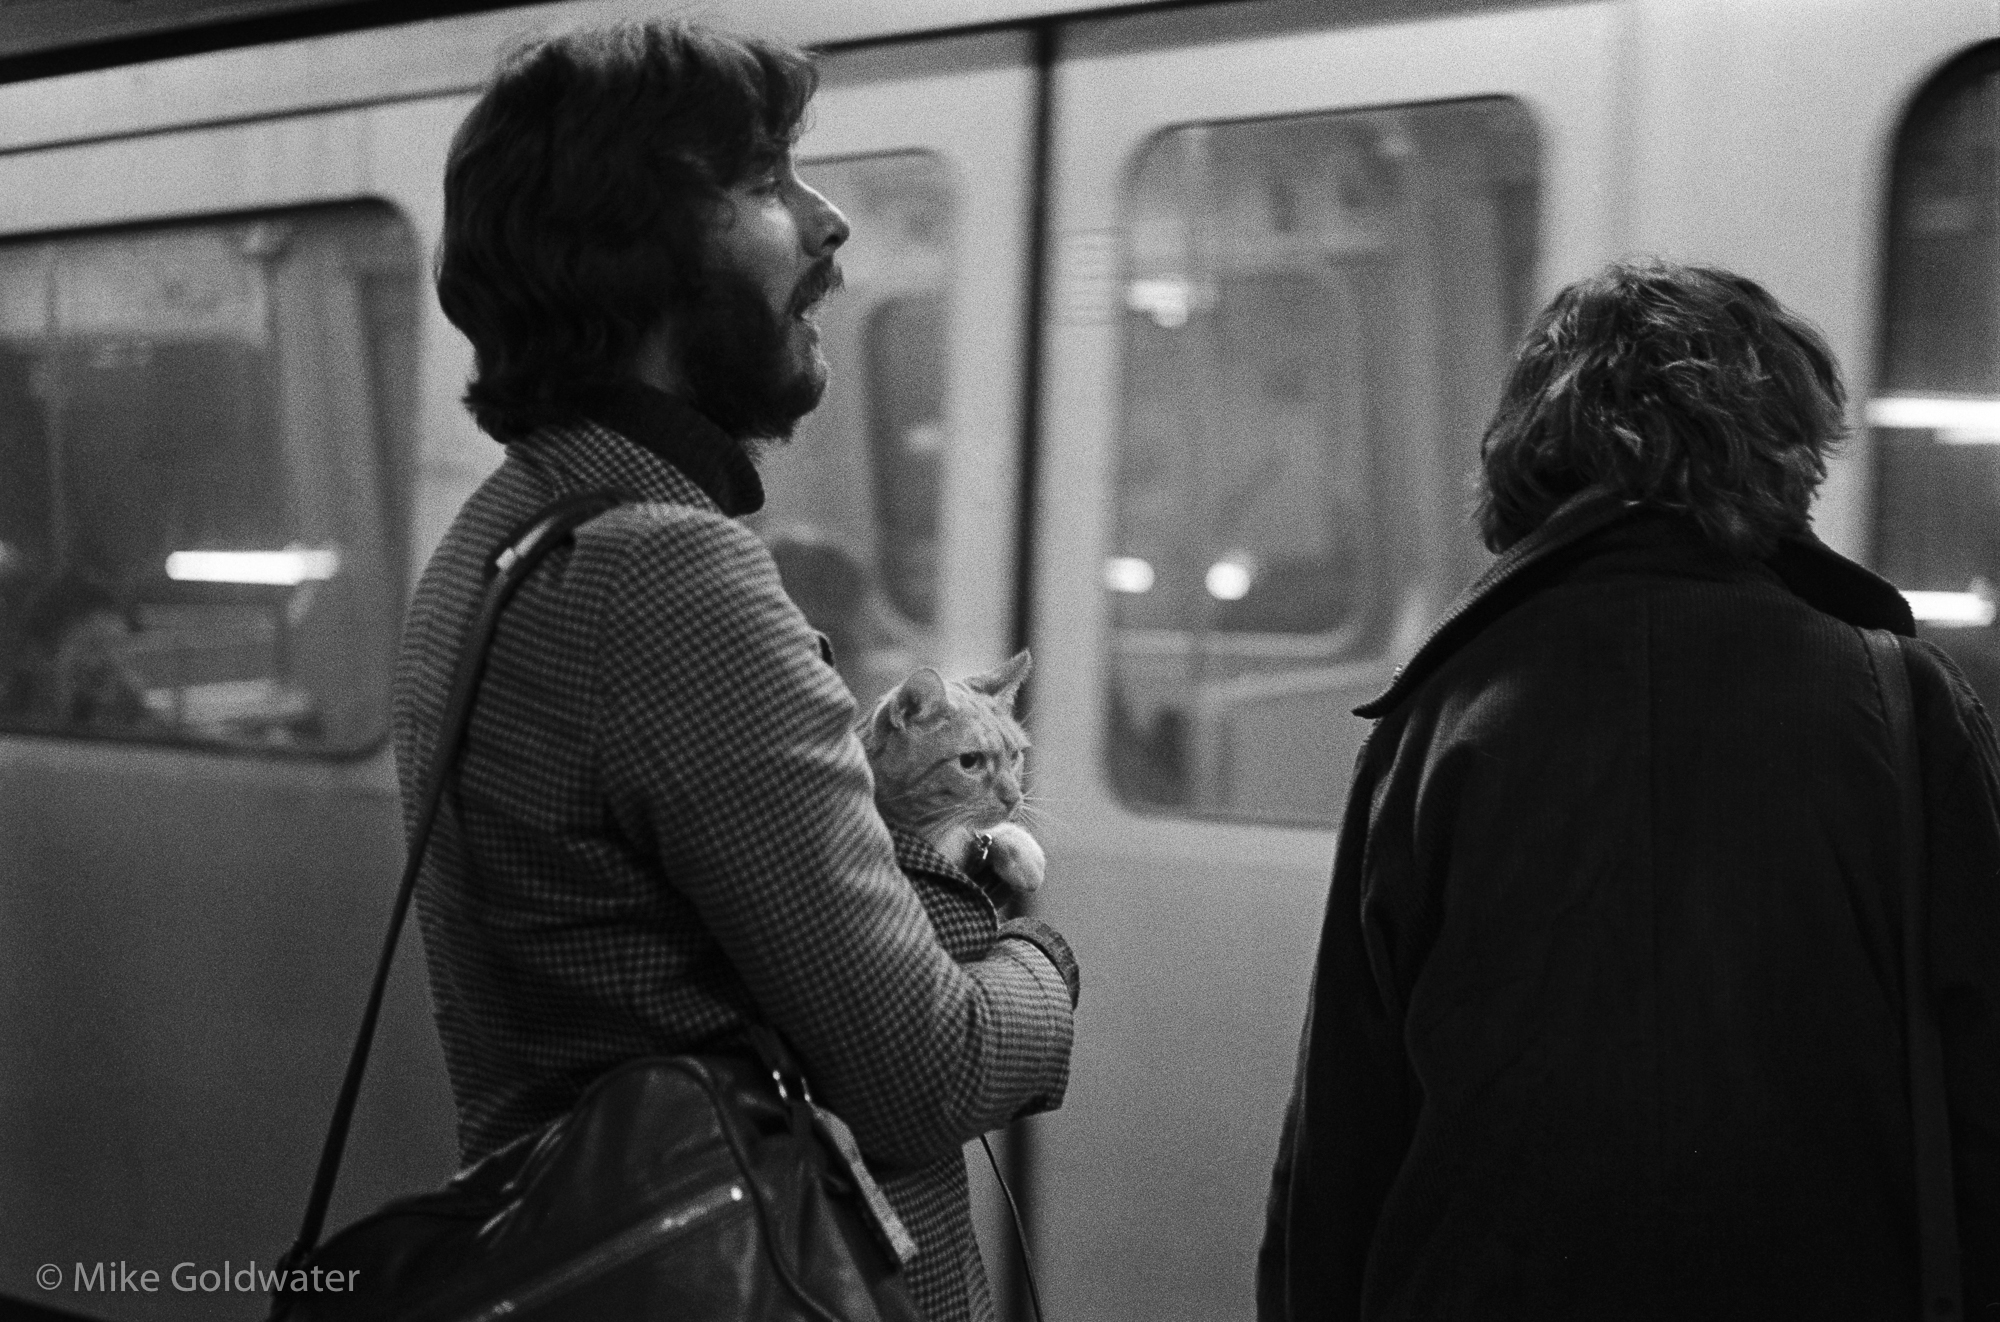 Man on Tube platform with cat (Pic: Mike Goldwater)